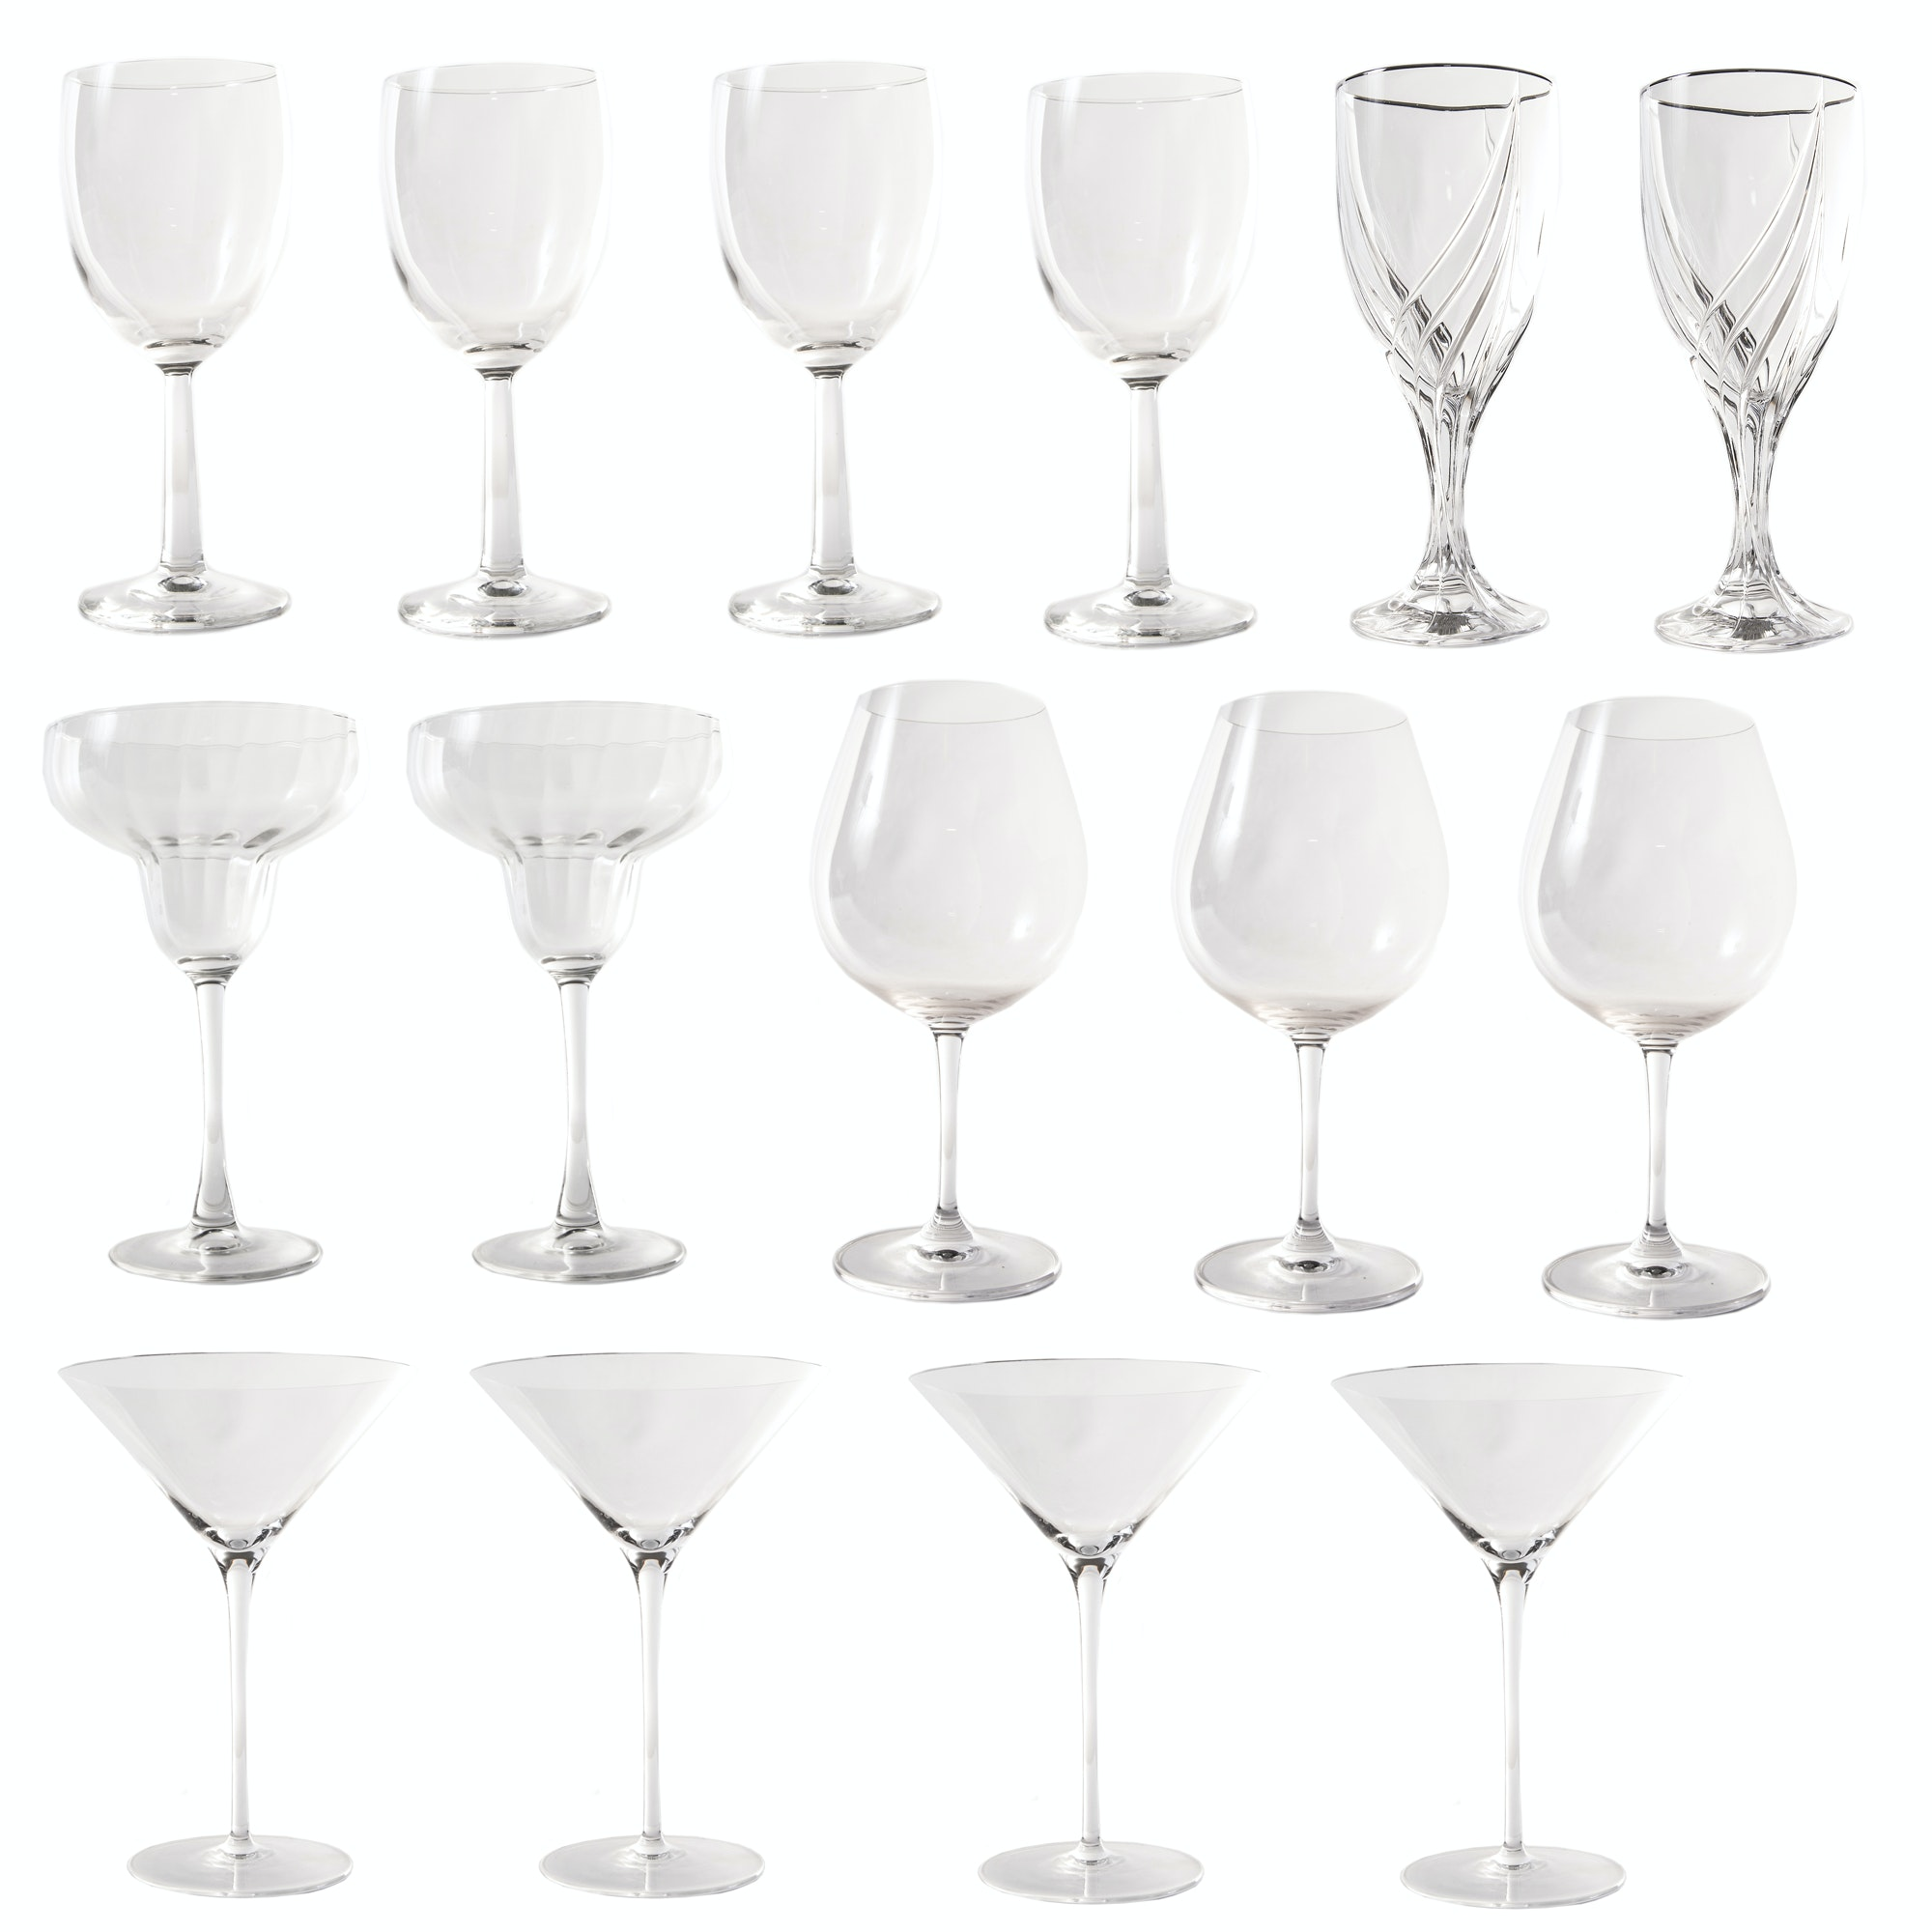 Collection of Stemware Featuring Riedel